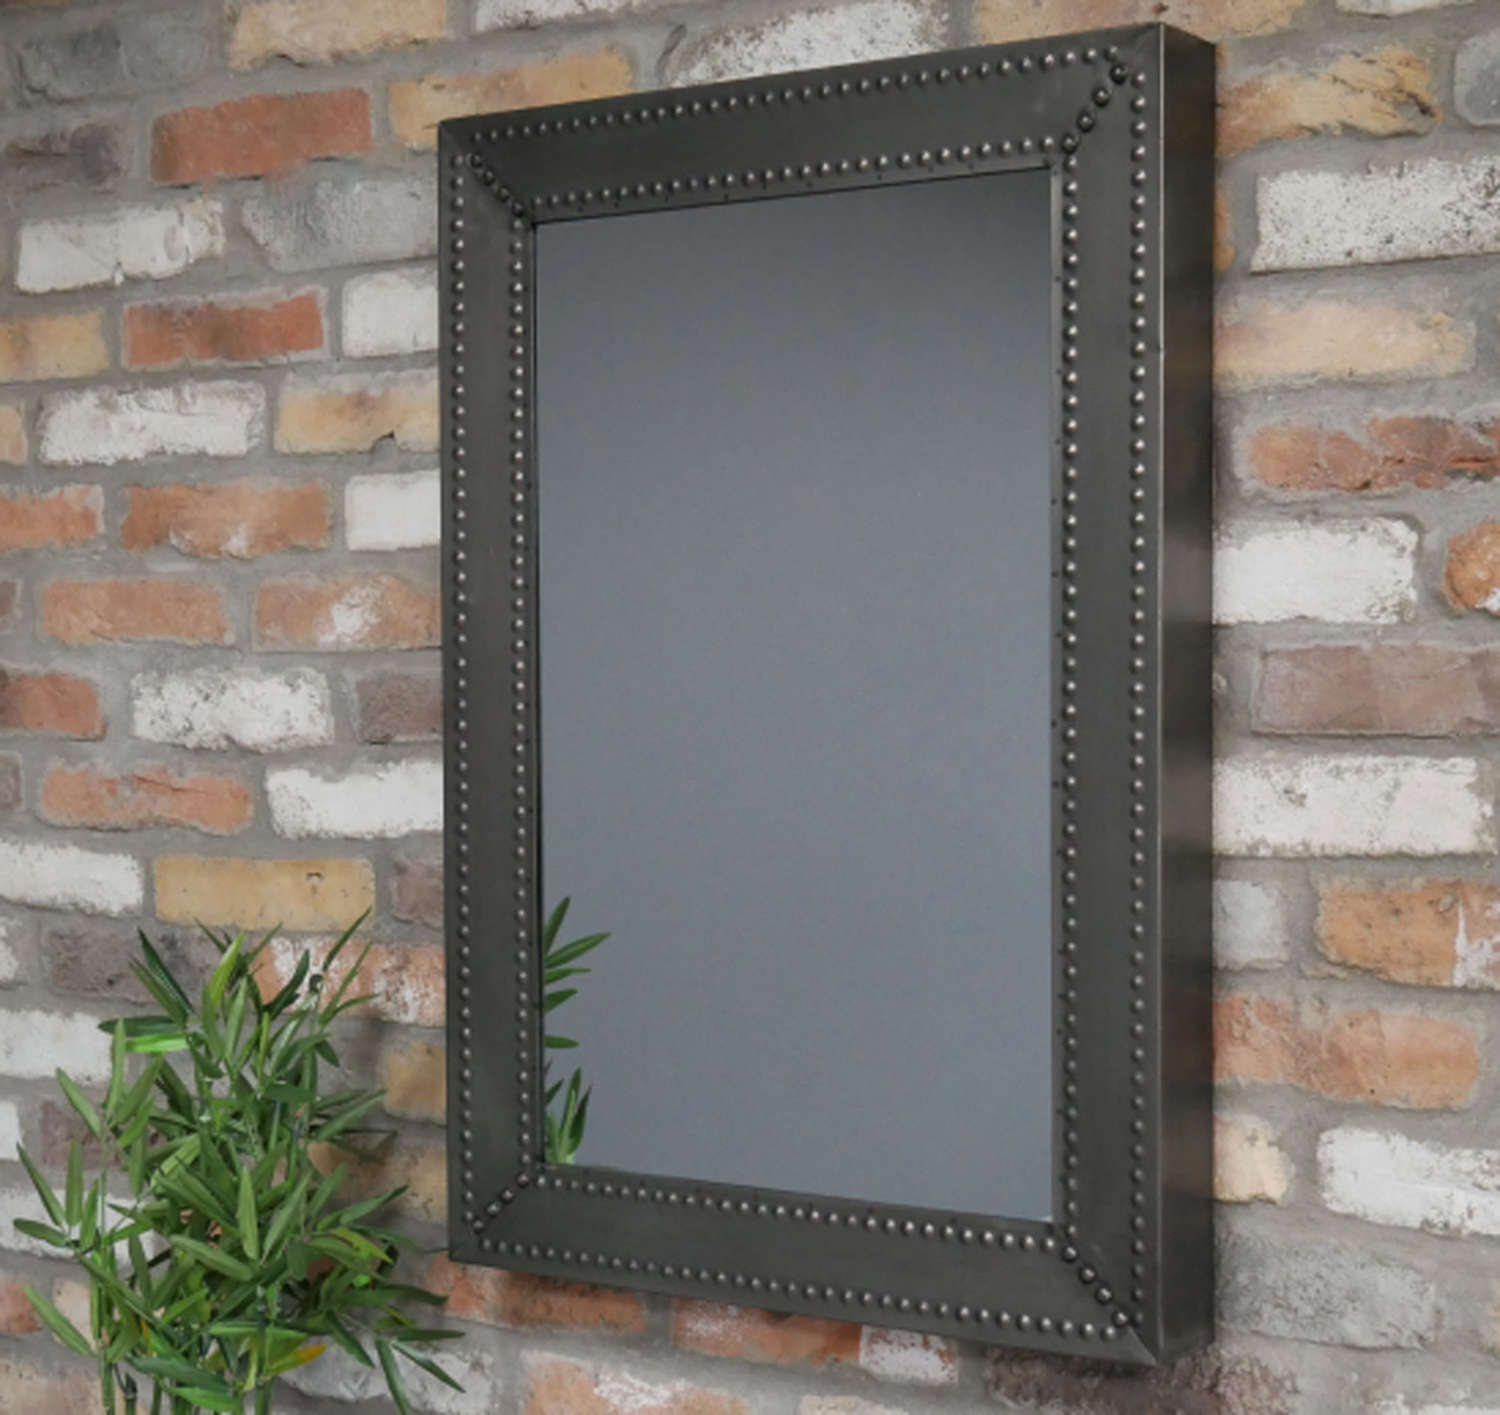 Industrial style metal studded mirror